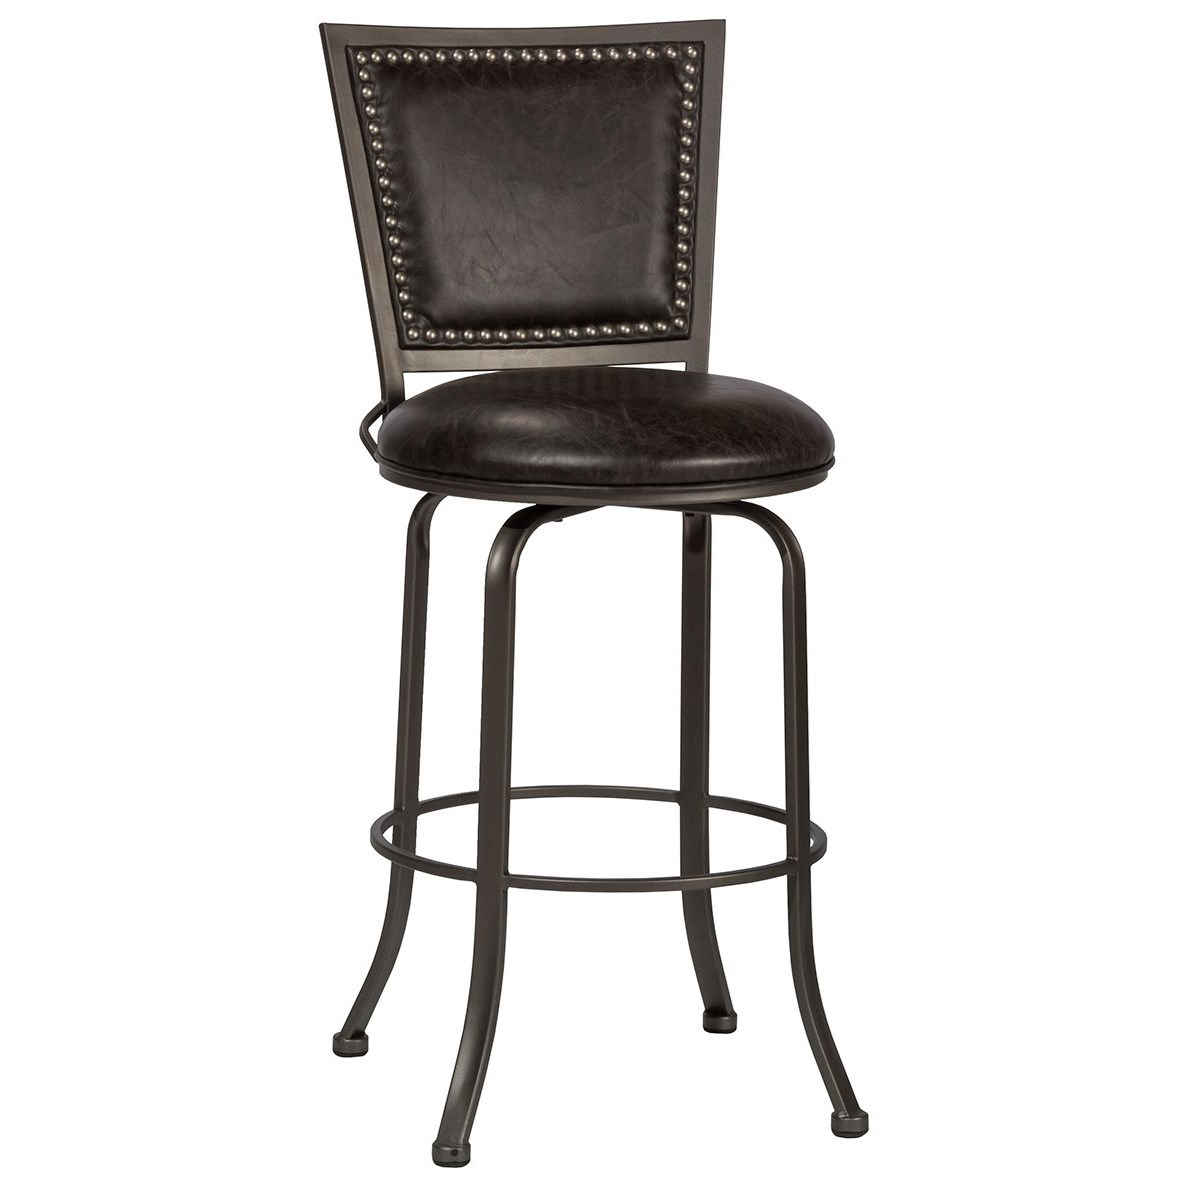 Belle Grove Stools Counter Height Stool by Hillsdale at Darvin Furniture